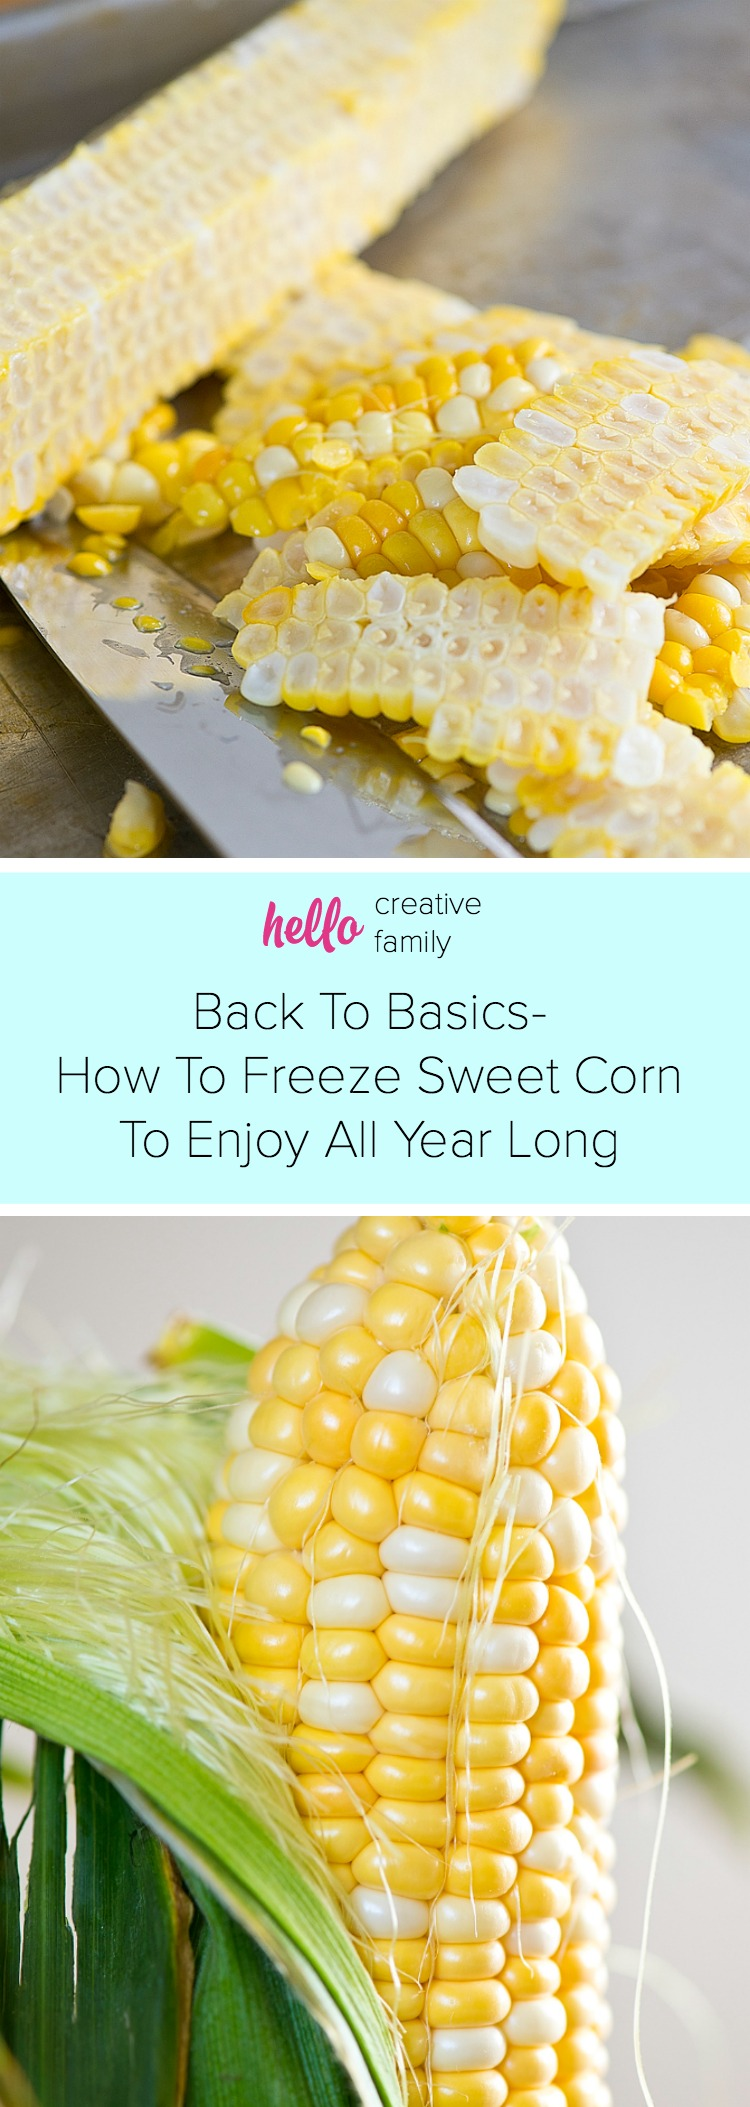 There is nothing in the world like the flavor of fresh sweet corn! It doesn't have to be just a summertime treat! Learn how to freeze sweet corn, fresh from the farmer's stand, in Hello Creative Family's latest Back To Basics tutorial!